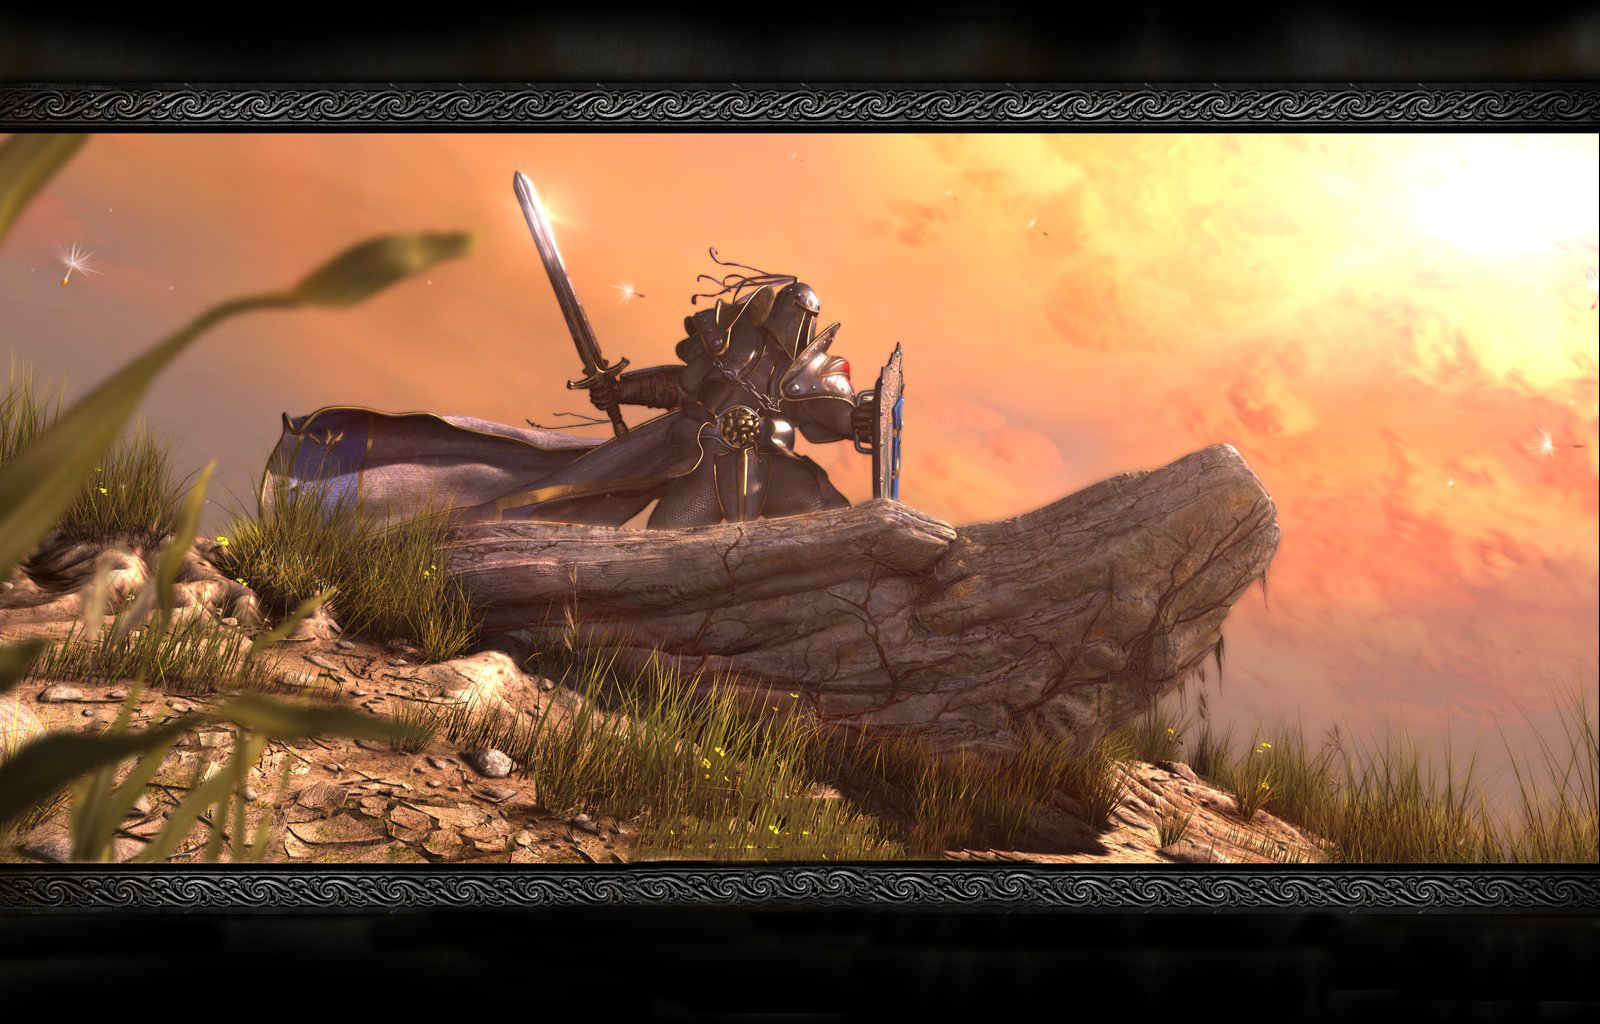 World of warcraft wallpaper and background image - Wallpaper 1600x1024 ...